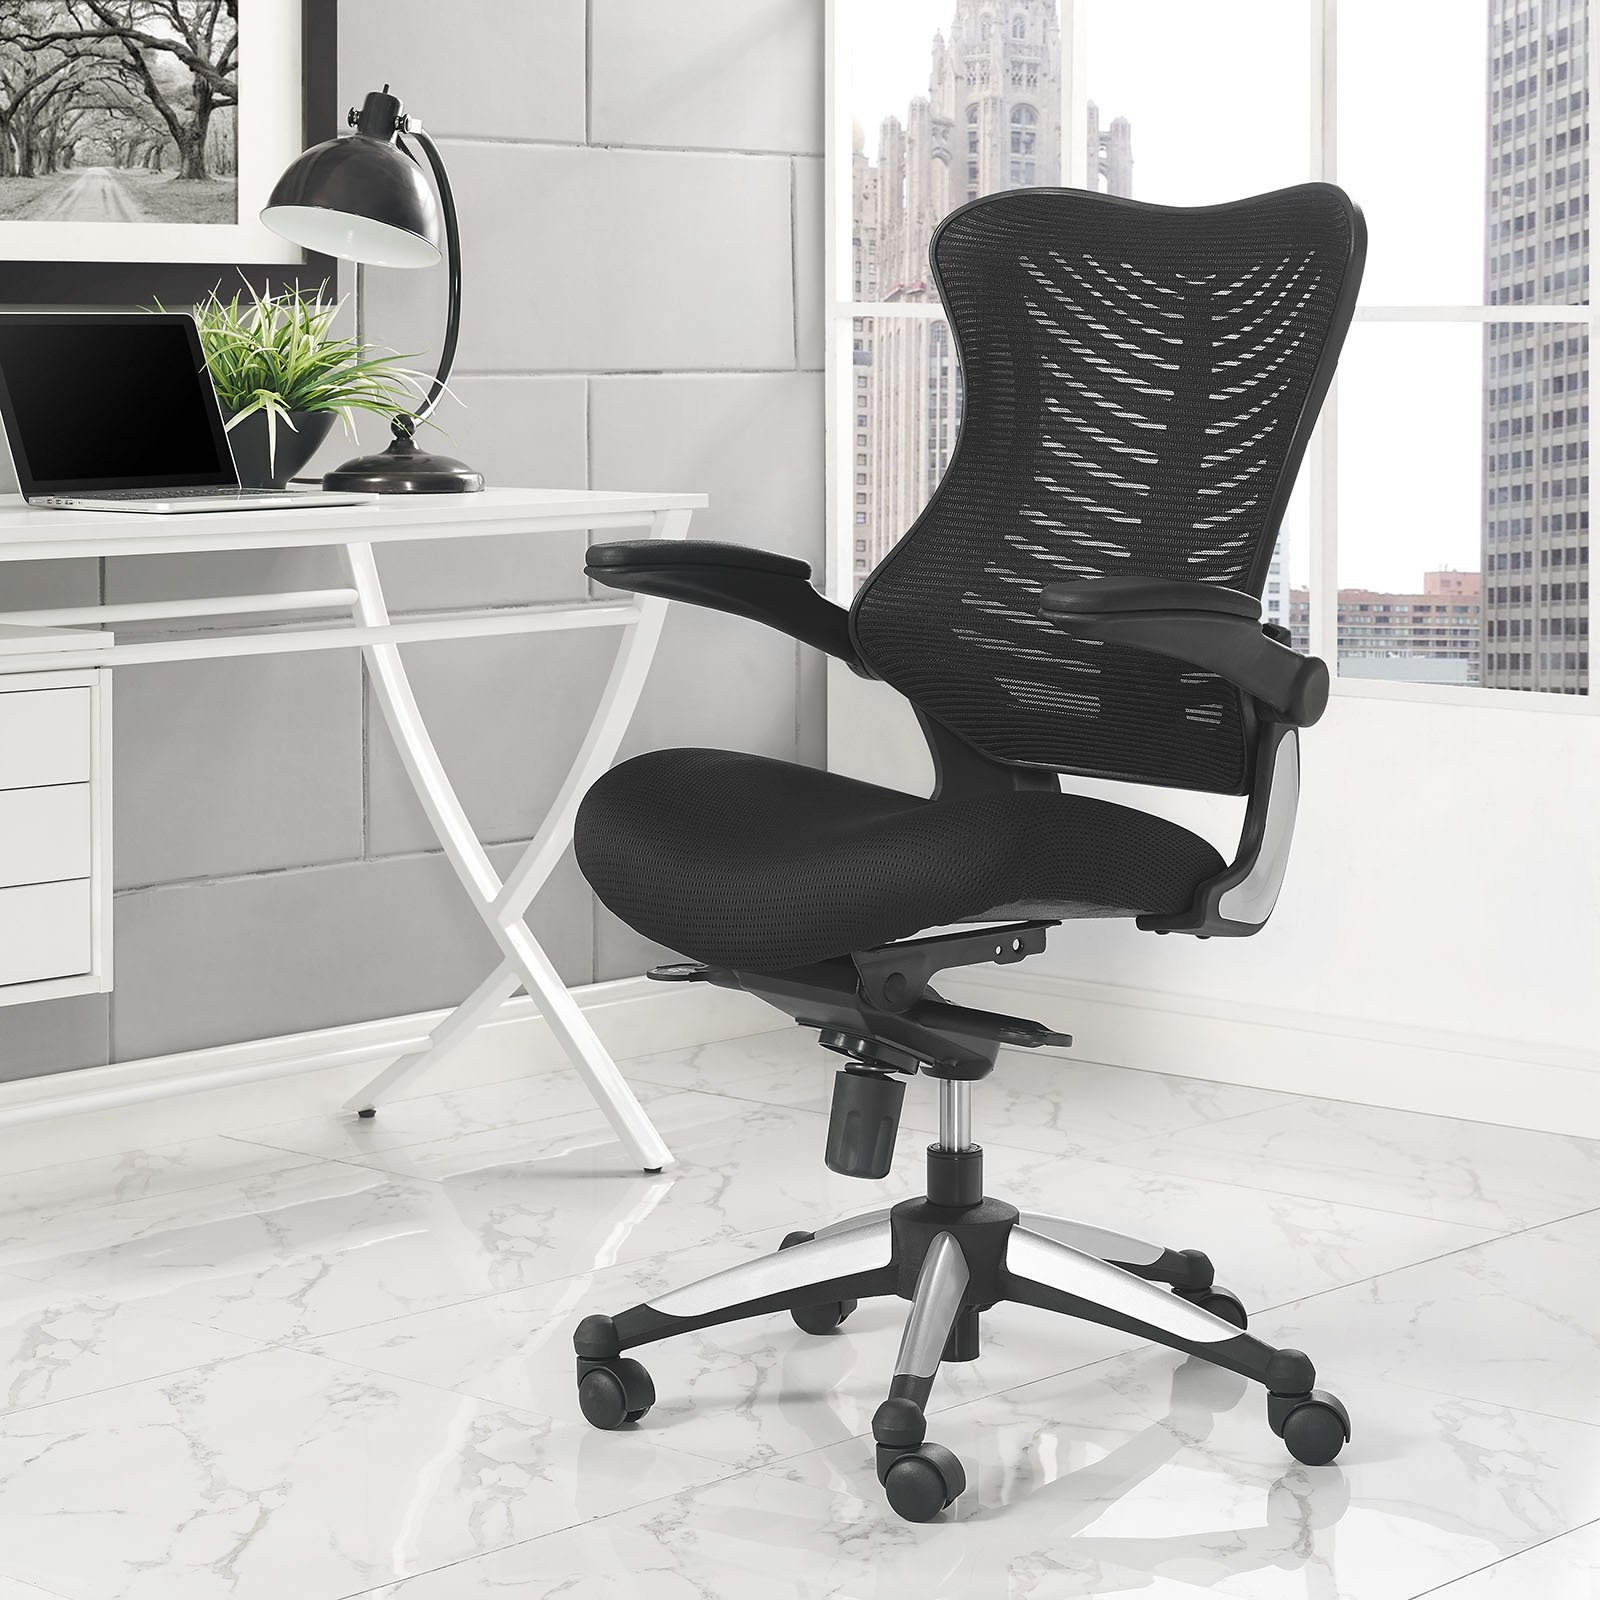 Modway Charge Ergonomic Managerial Mesh Office Chair with Flip-Up Padded Arms, Black by Modway